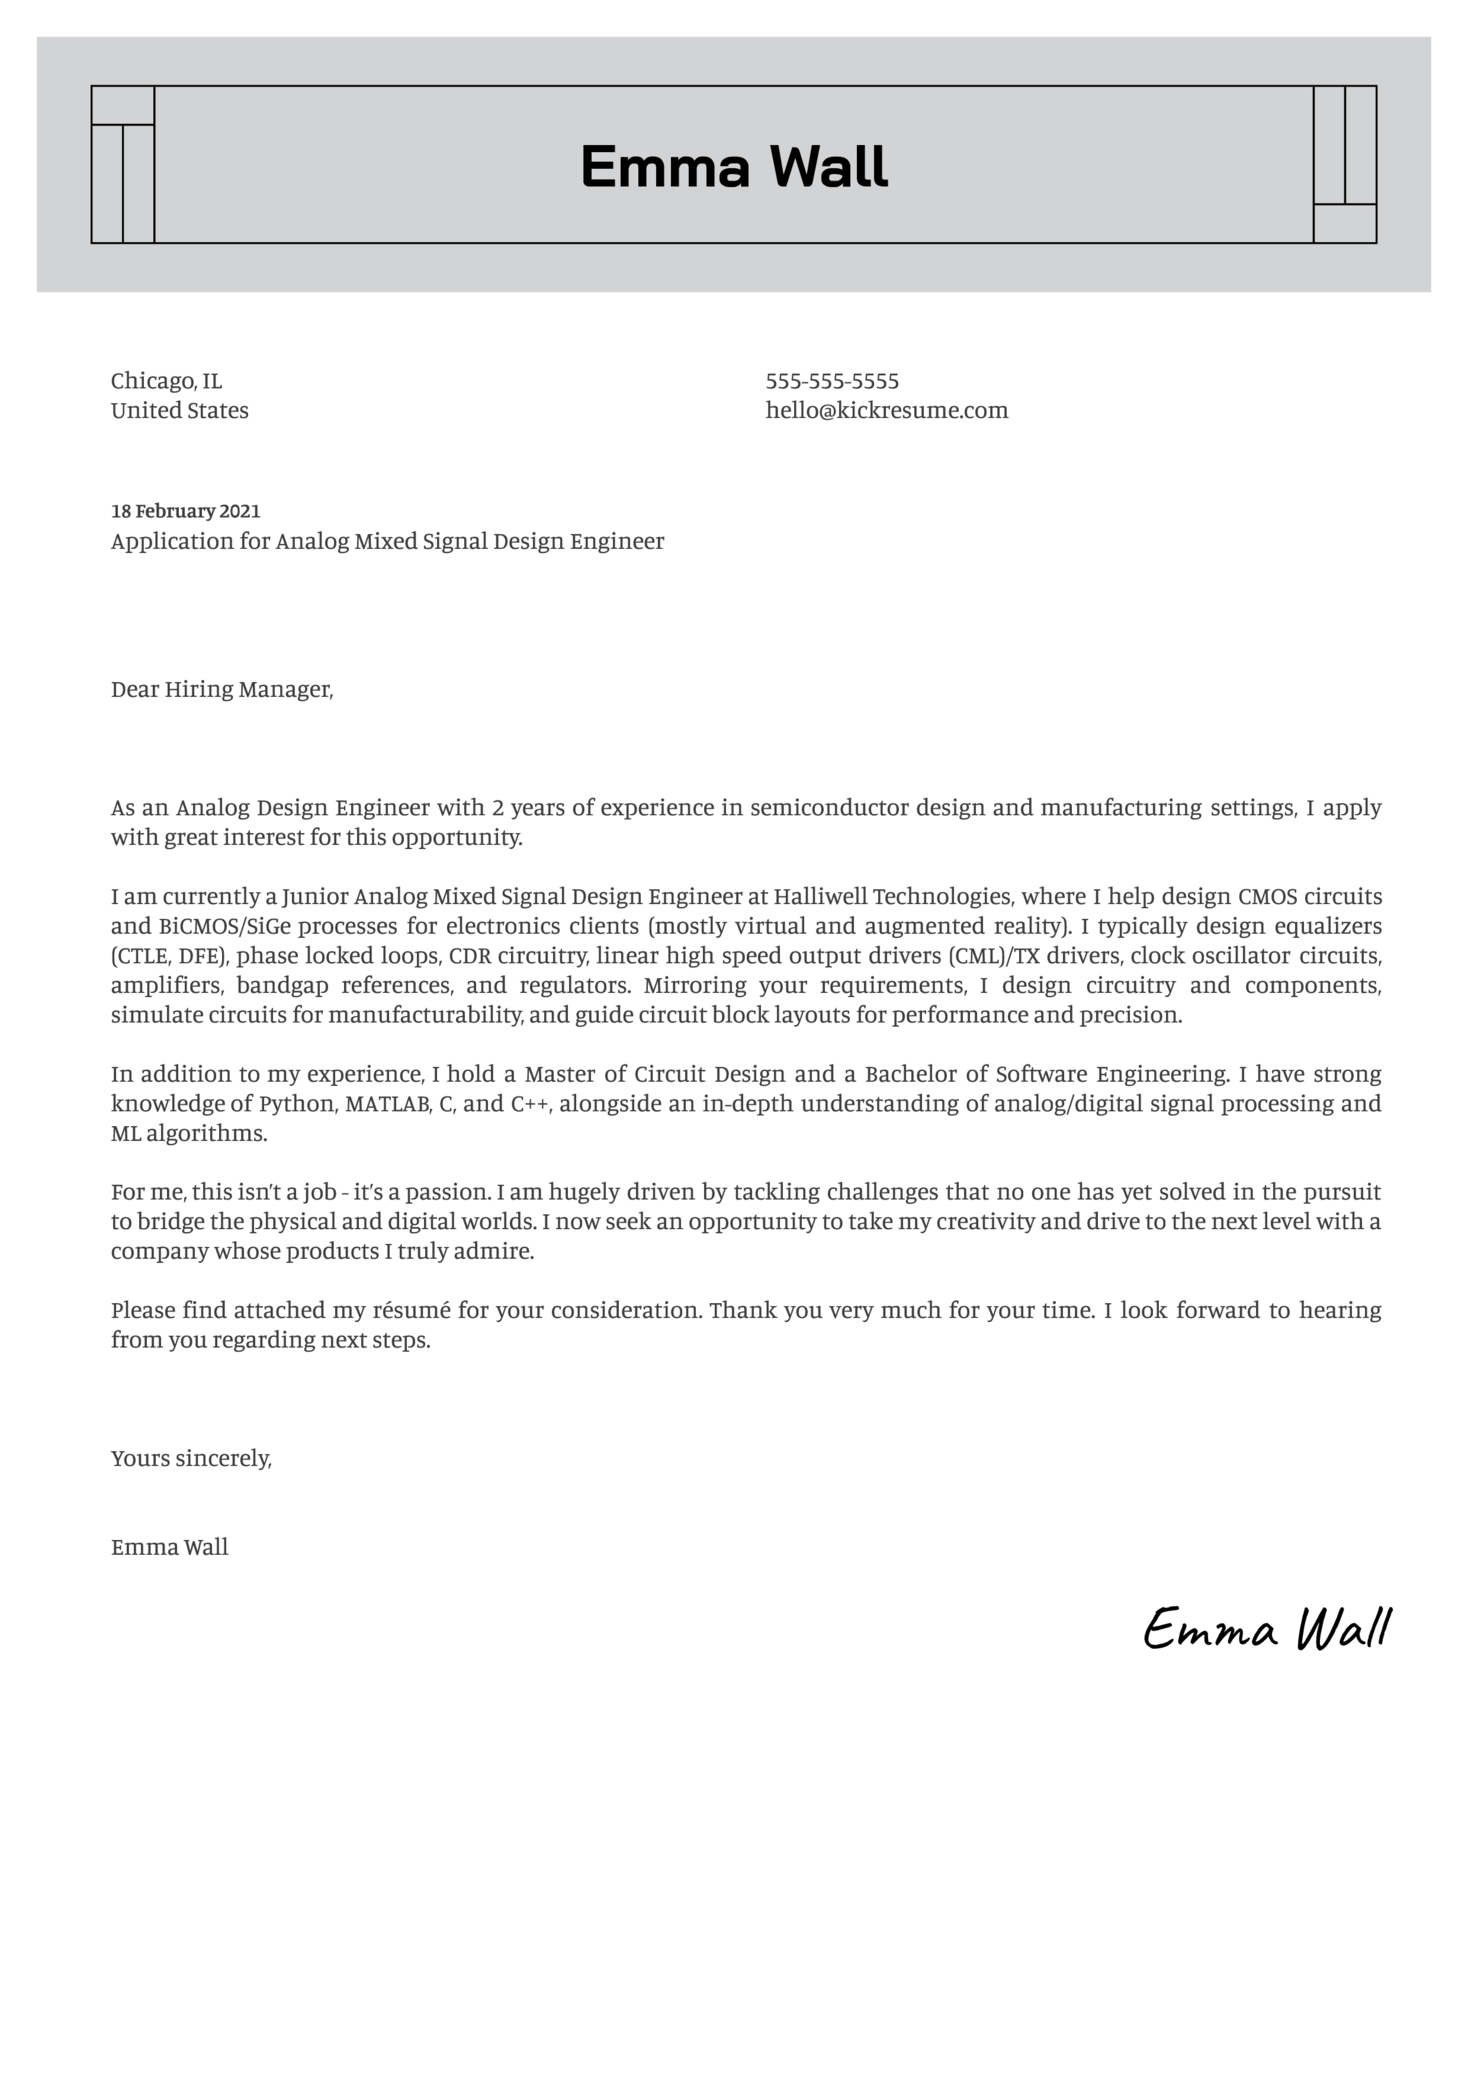 Analog Mixed Signal Design Engineer Cover Letter Sample